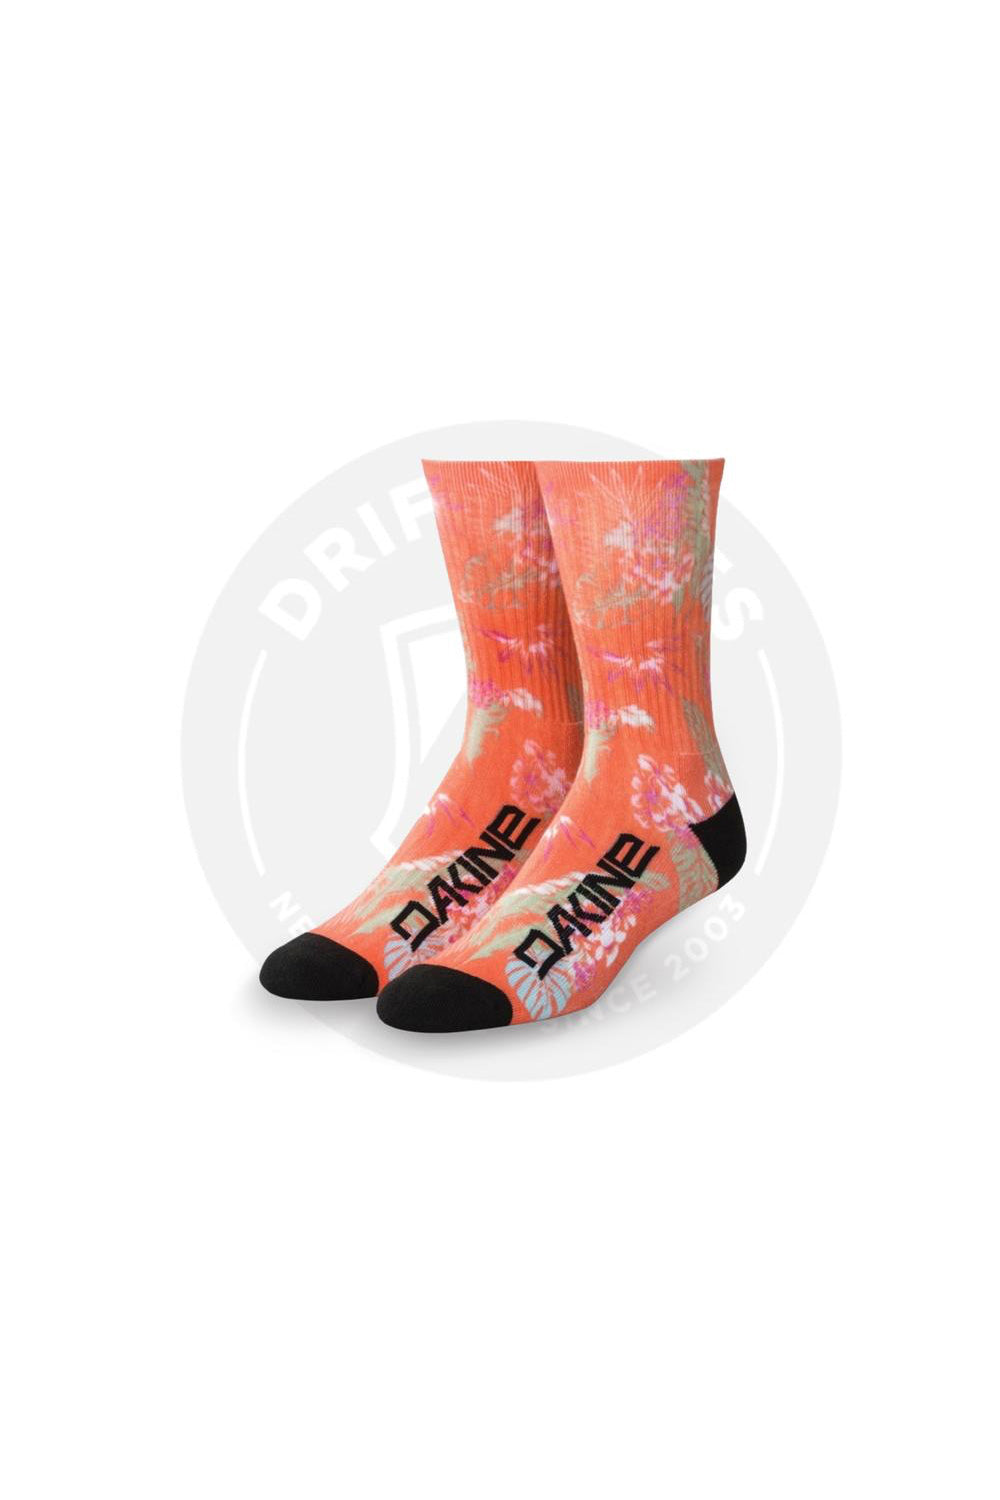 Dakine Booker Socks Waikiki - One Size